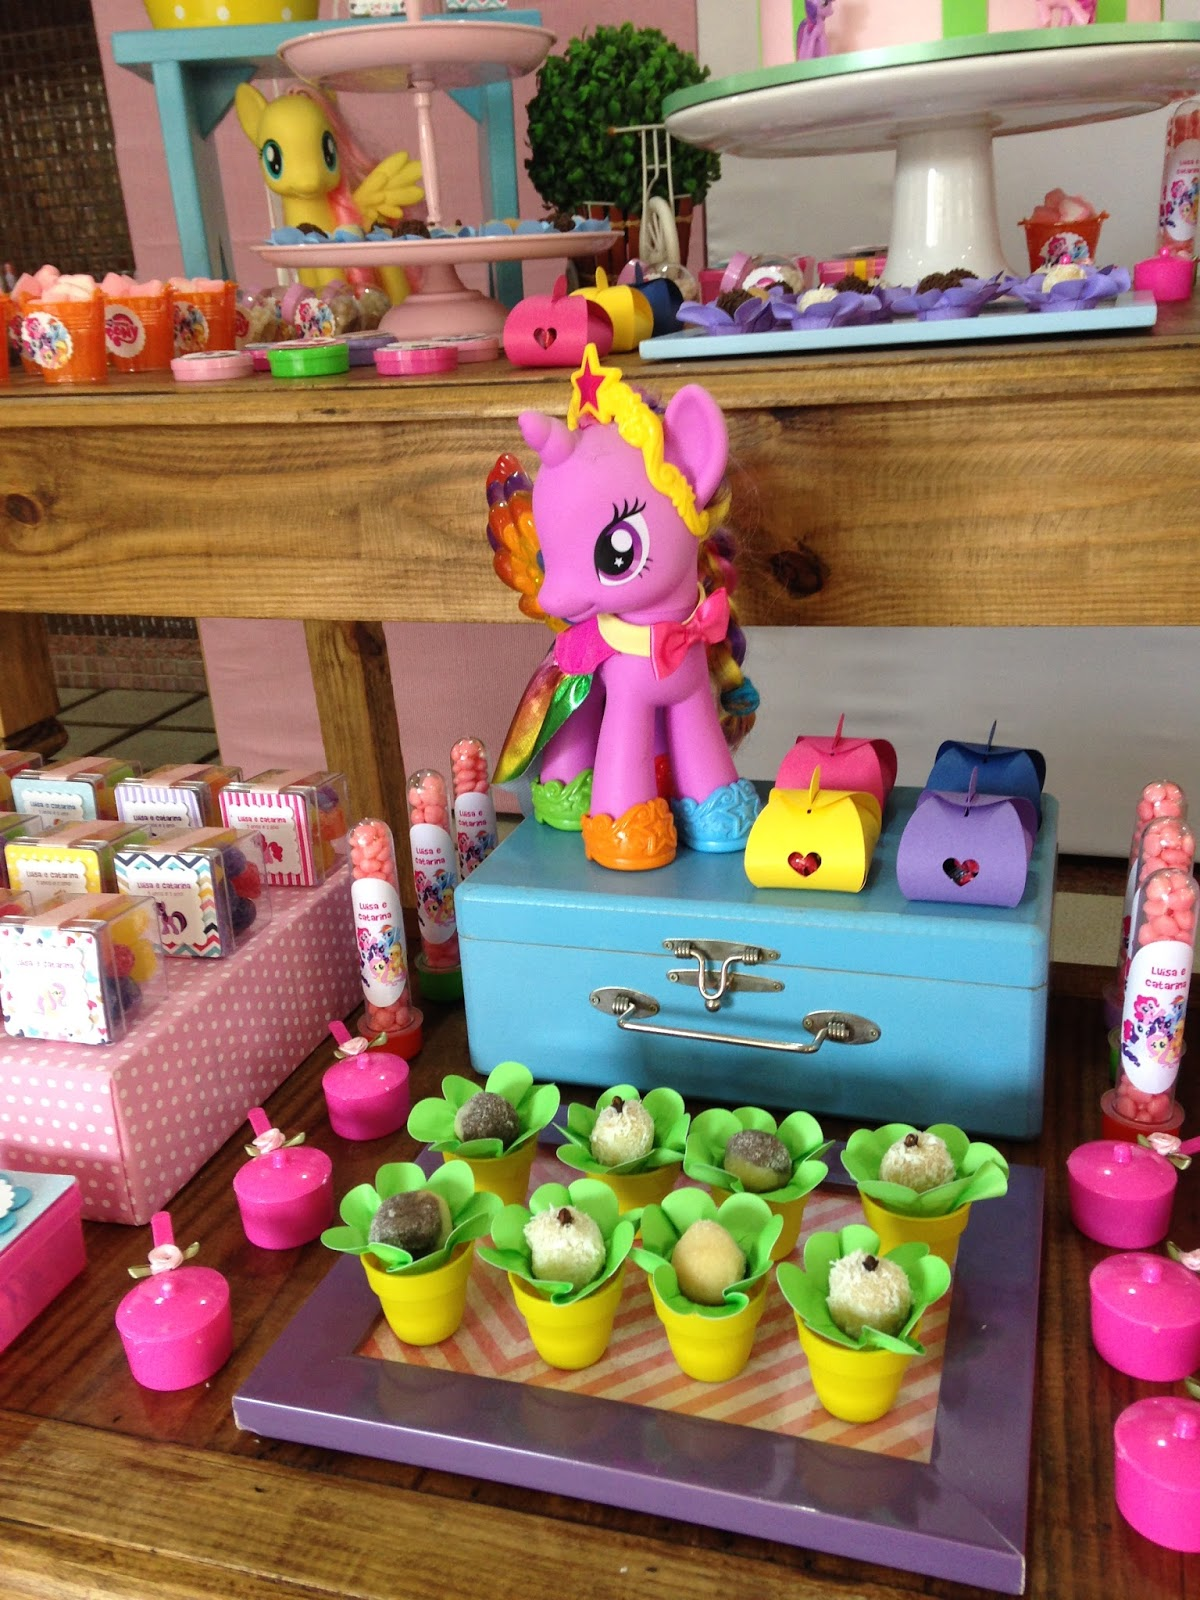 How do you clean a My Little Pony?